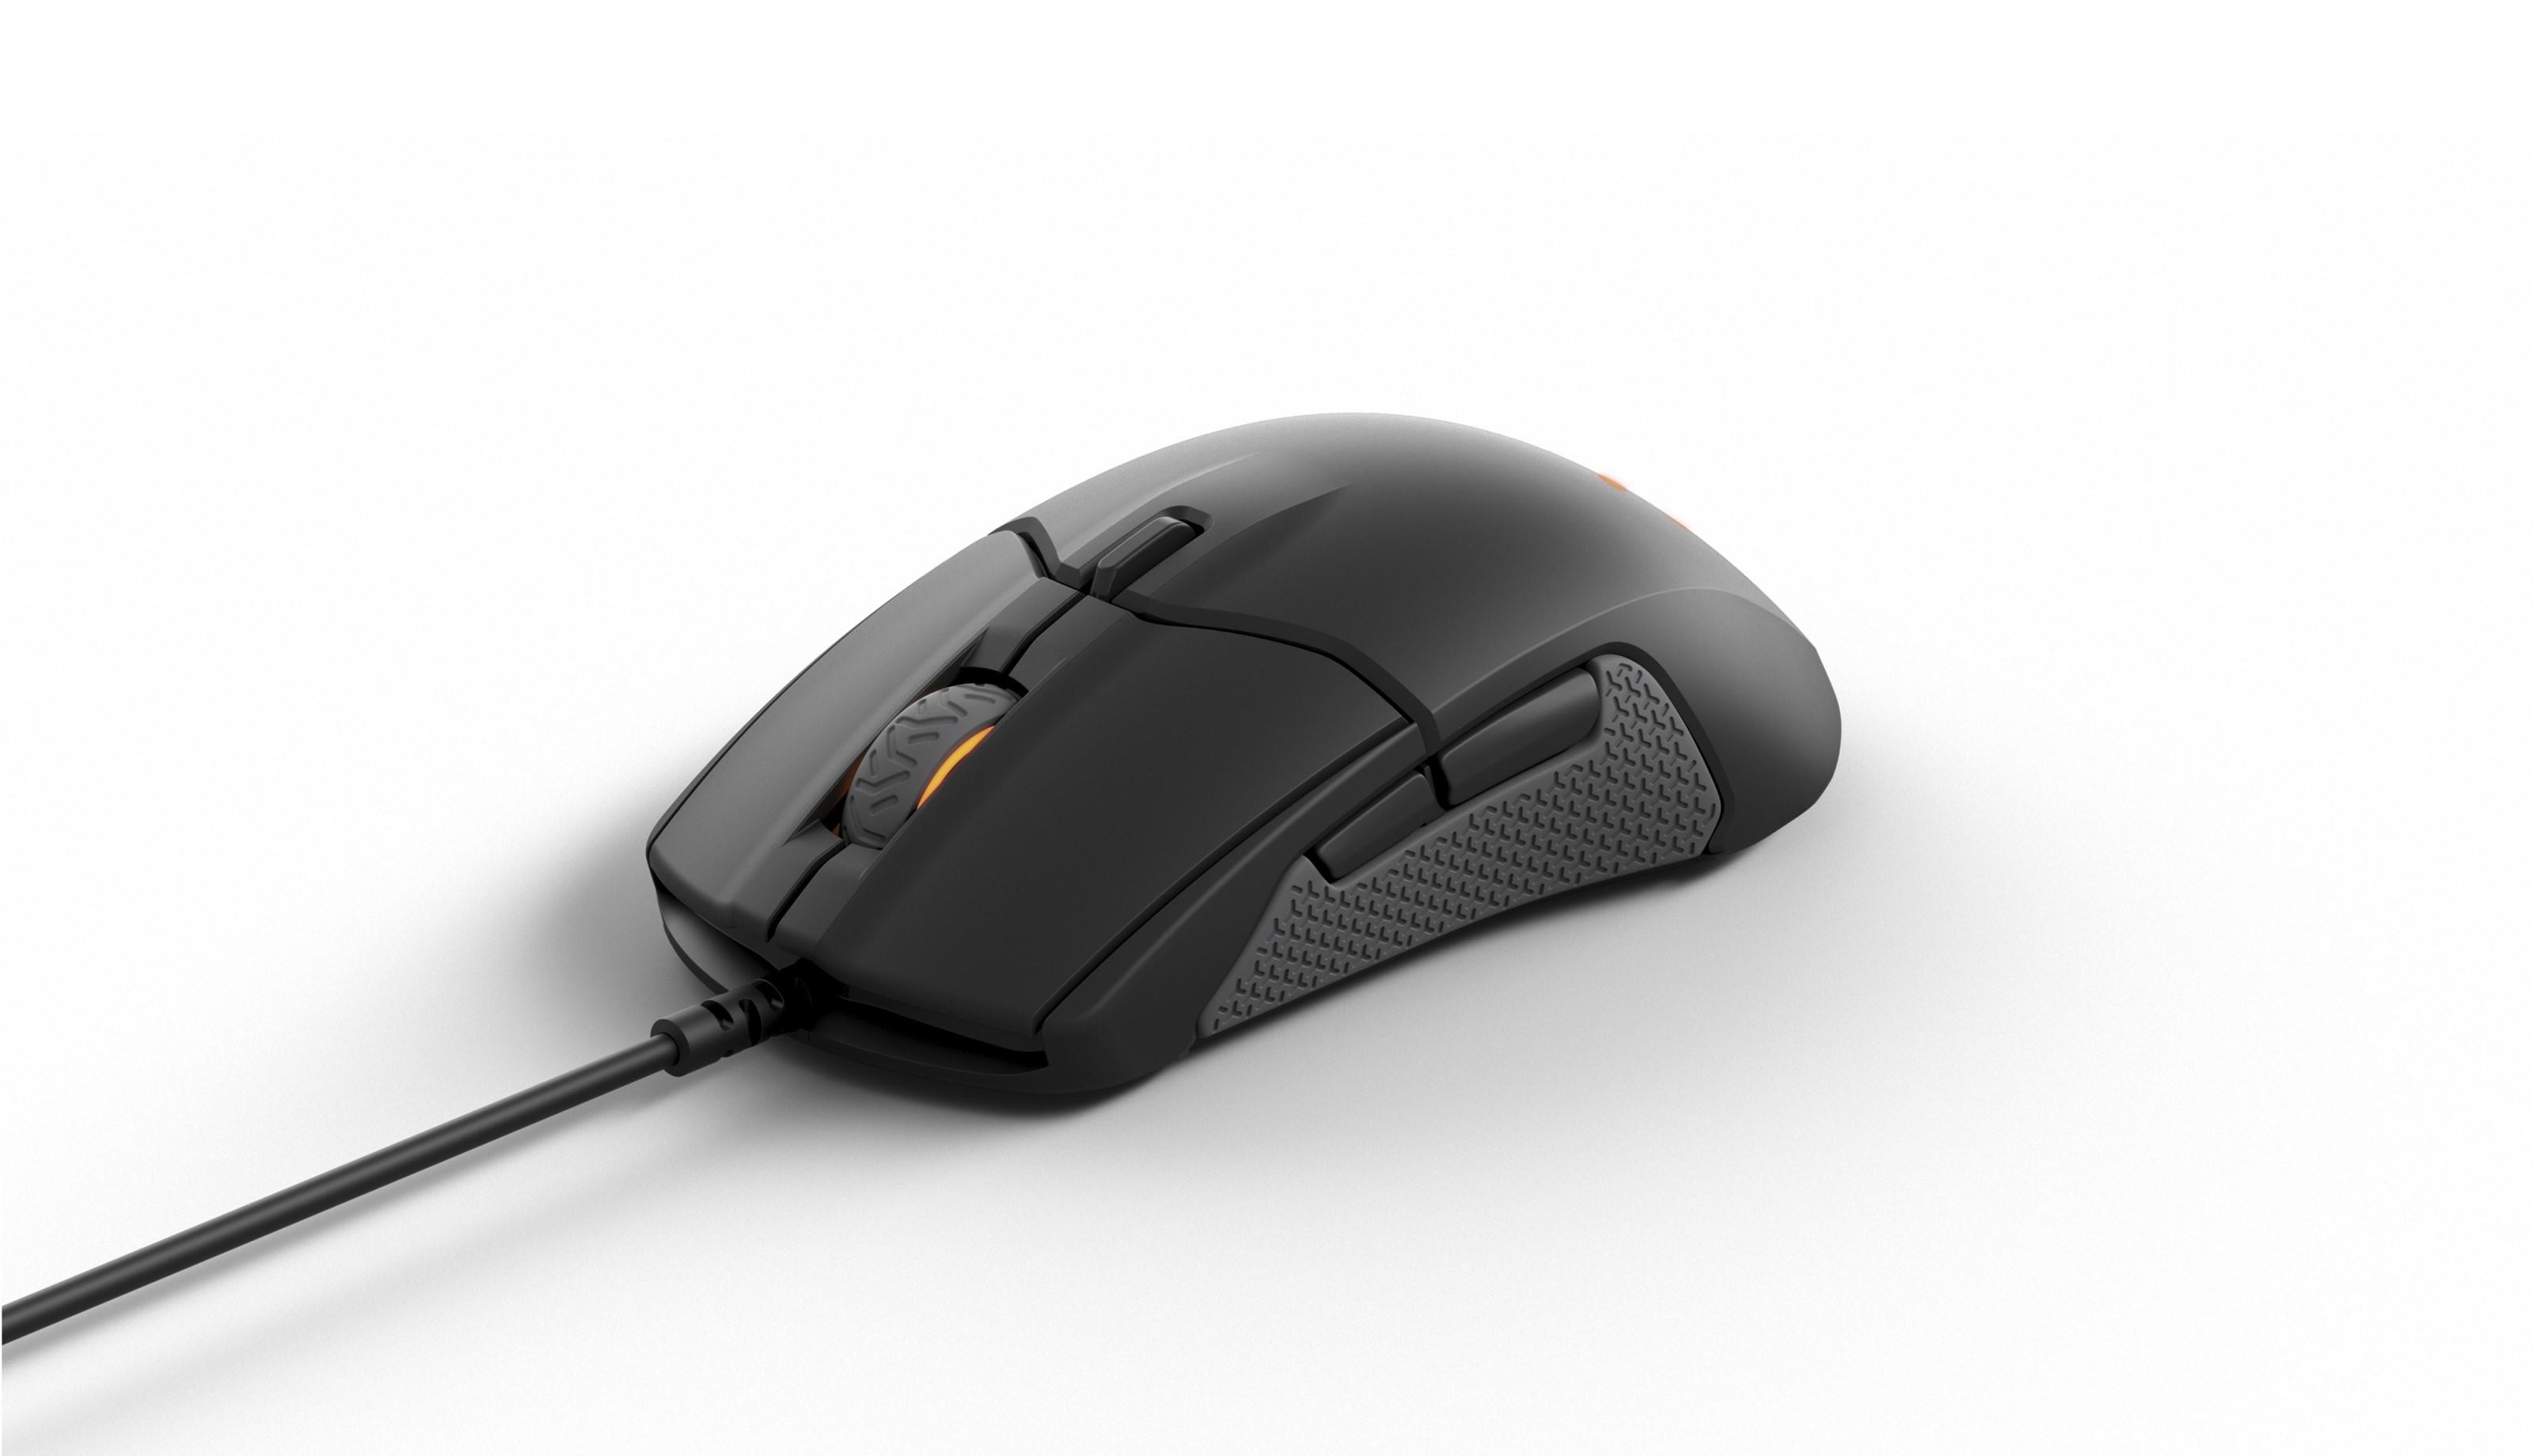 cf41f9deb15 steelseries-sensei-310-black-mouse.jpg